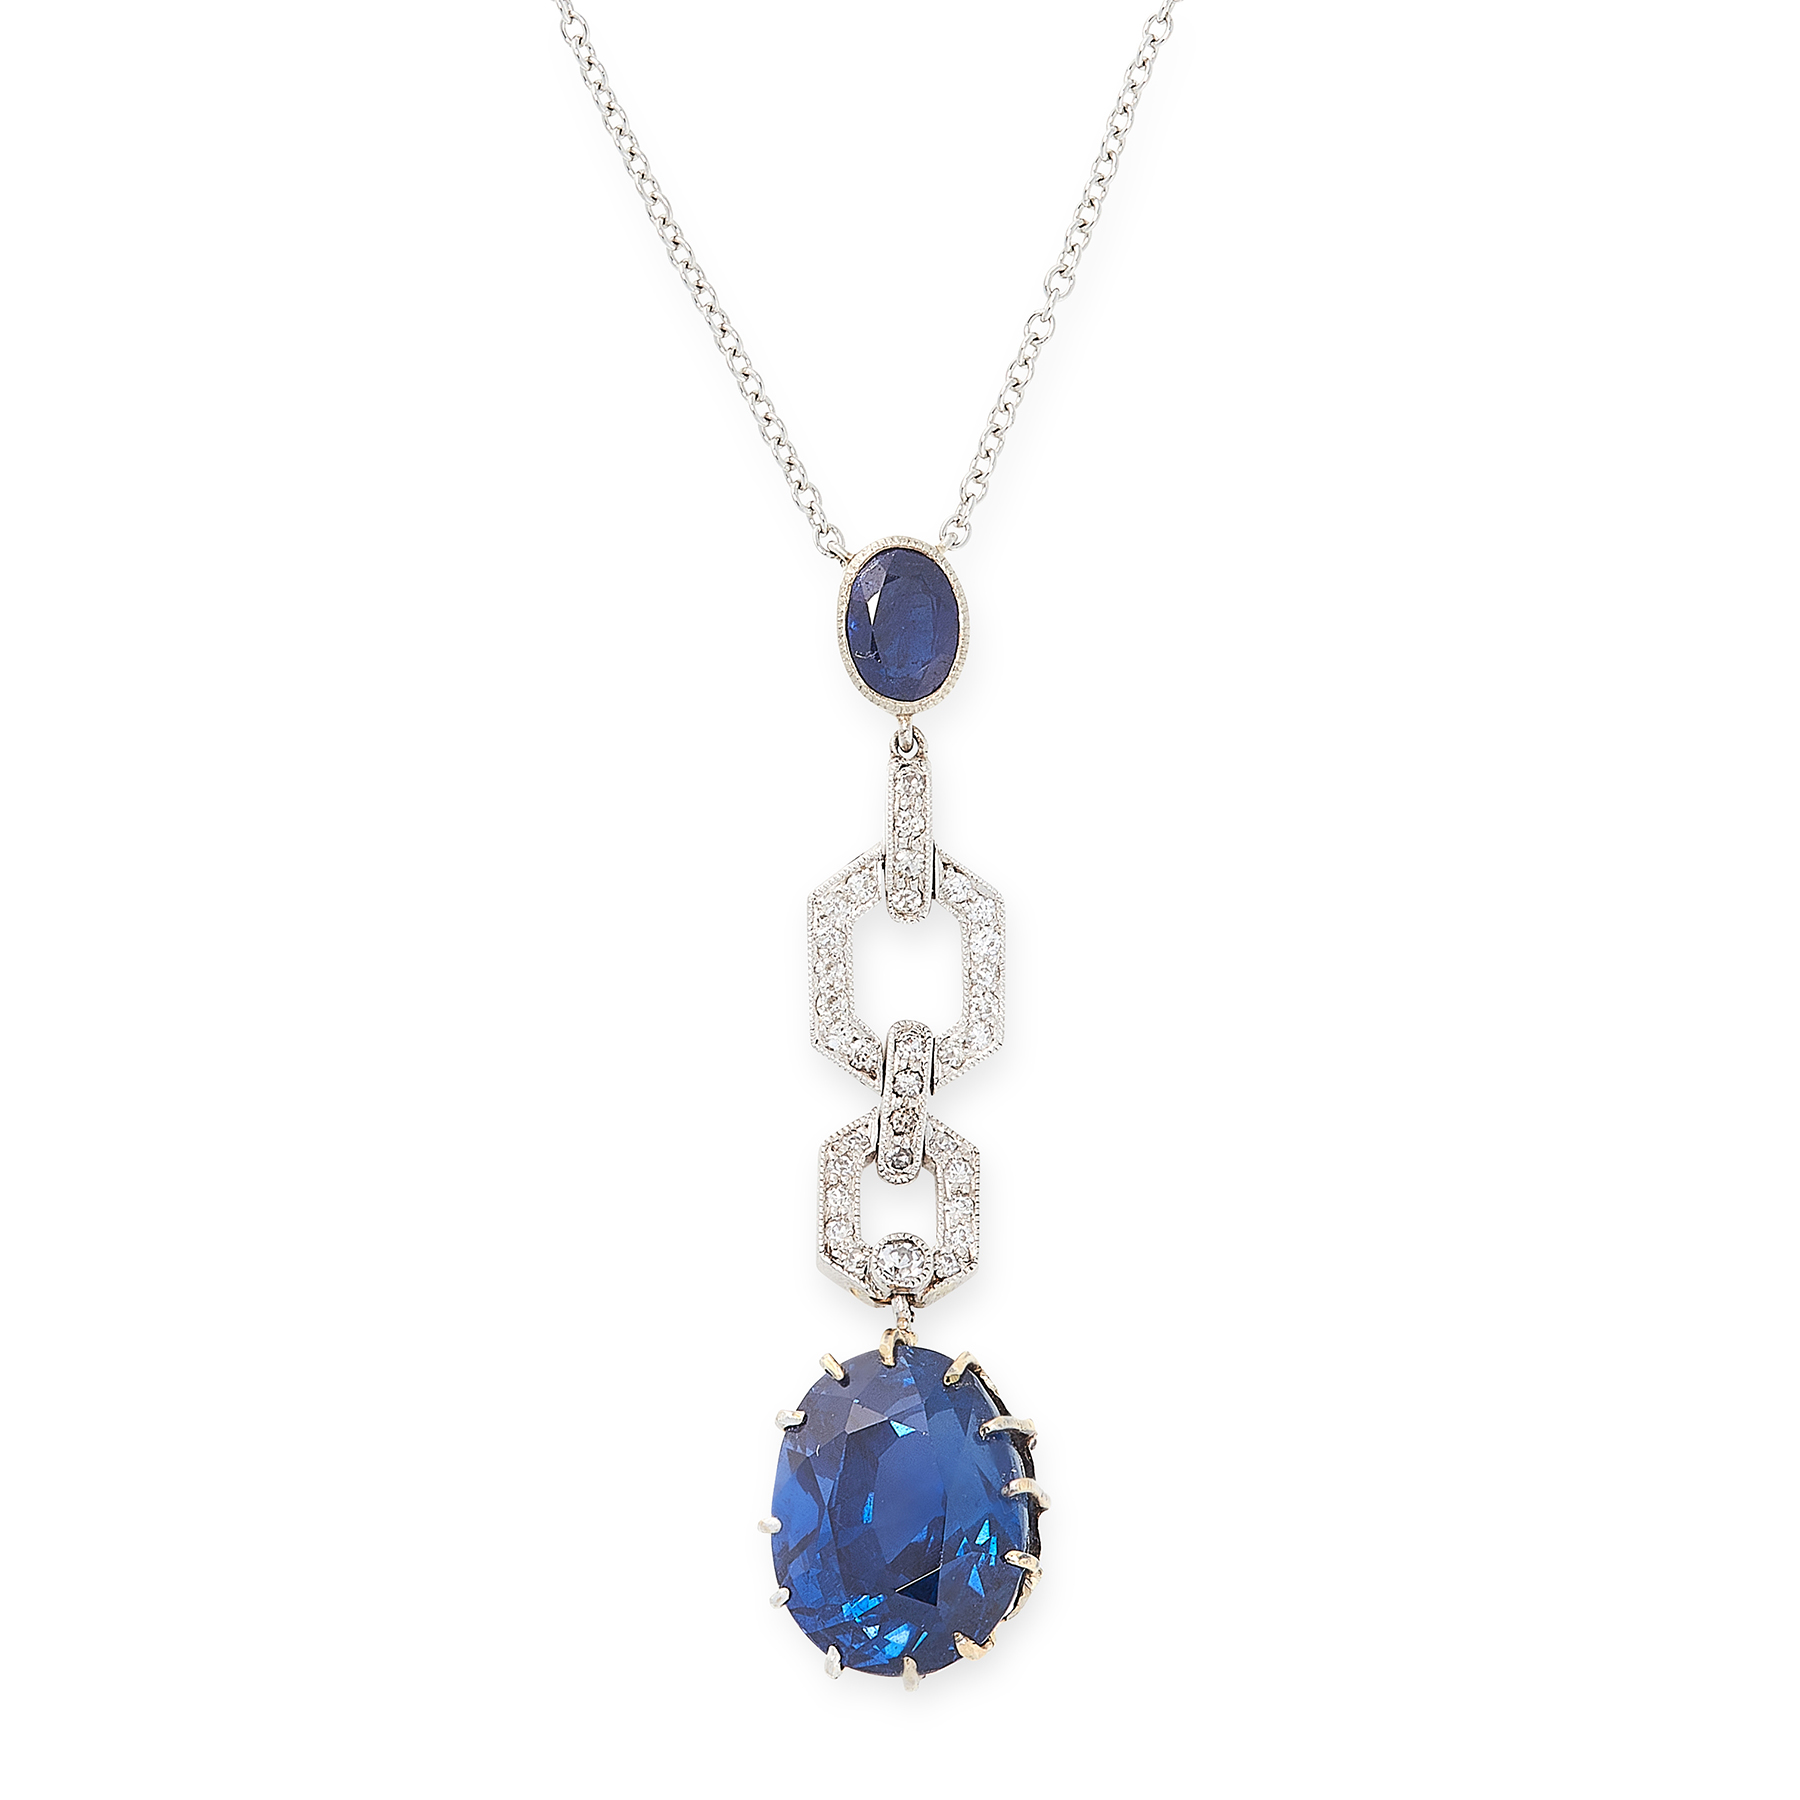 A CEYLON NO HEAT SAPPHIRE AND DIAMOND PENDANT NECKLACE set with a principal oval cut blue sapphire